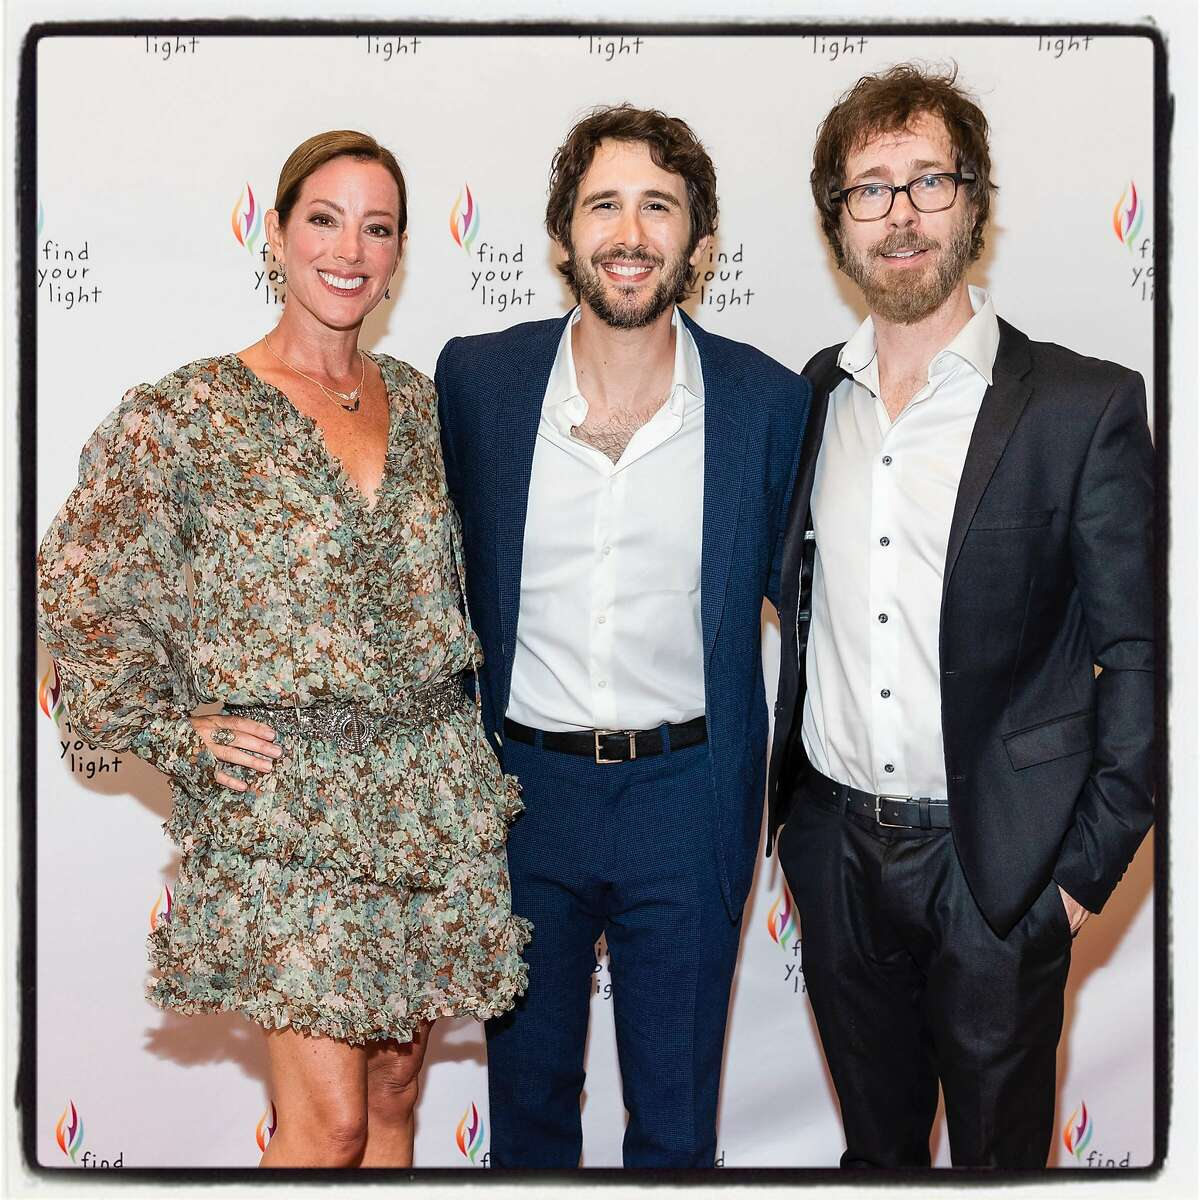 Musical artists Sarah McLachlan with Josh Groban (center) and Ben Folds at the Find Your Light gala. May 4, 2019.